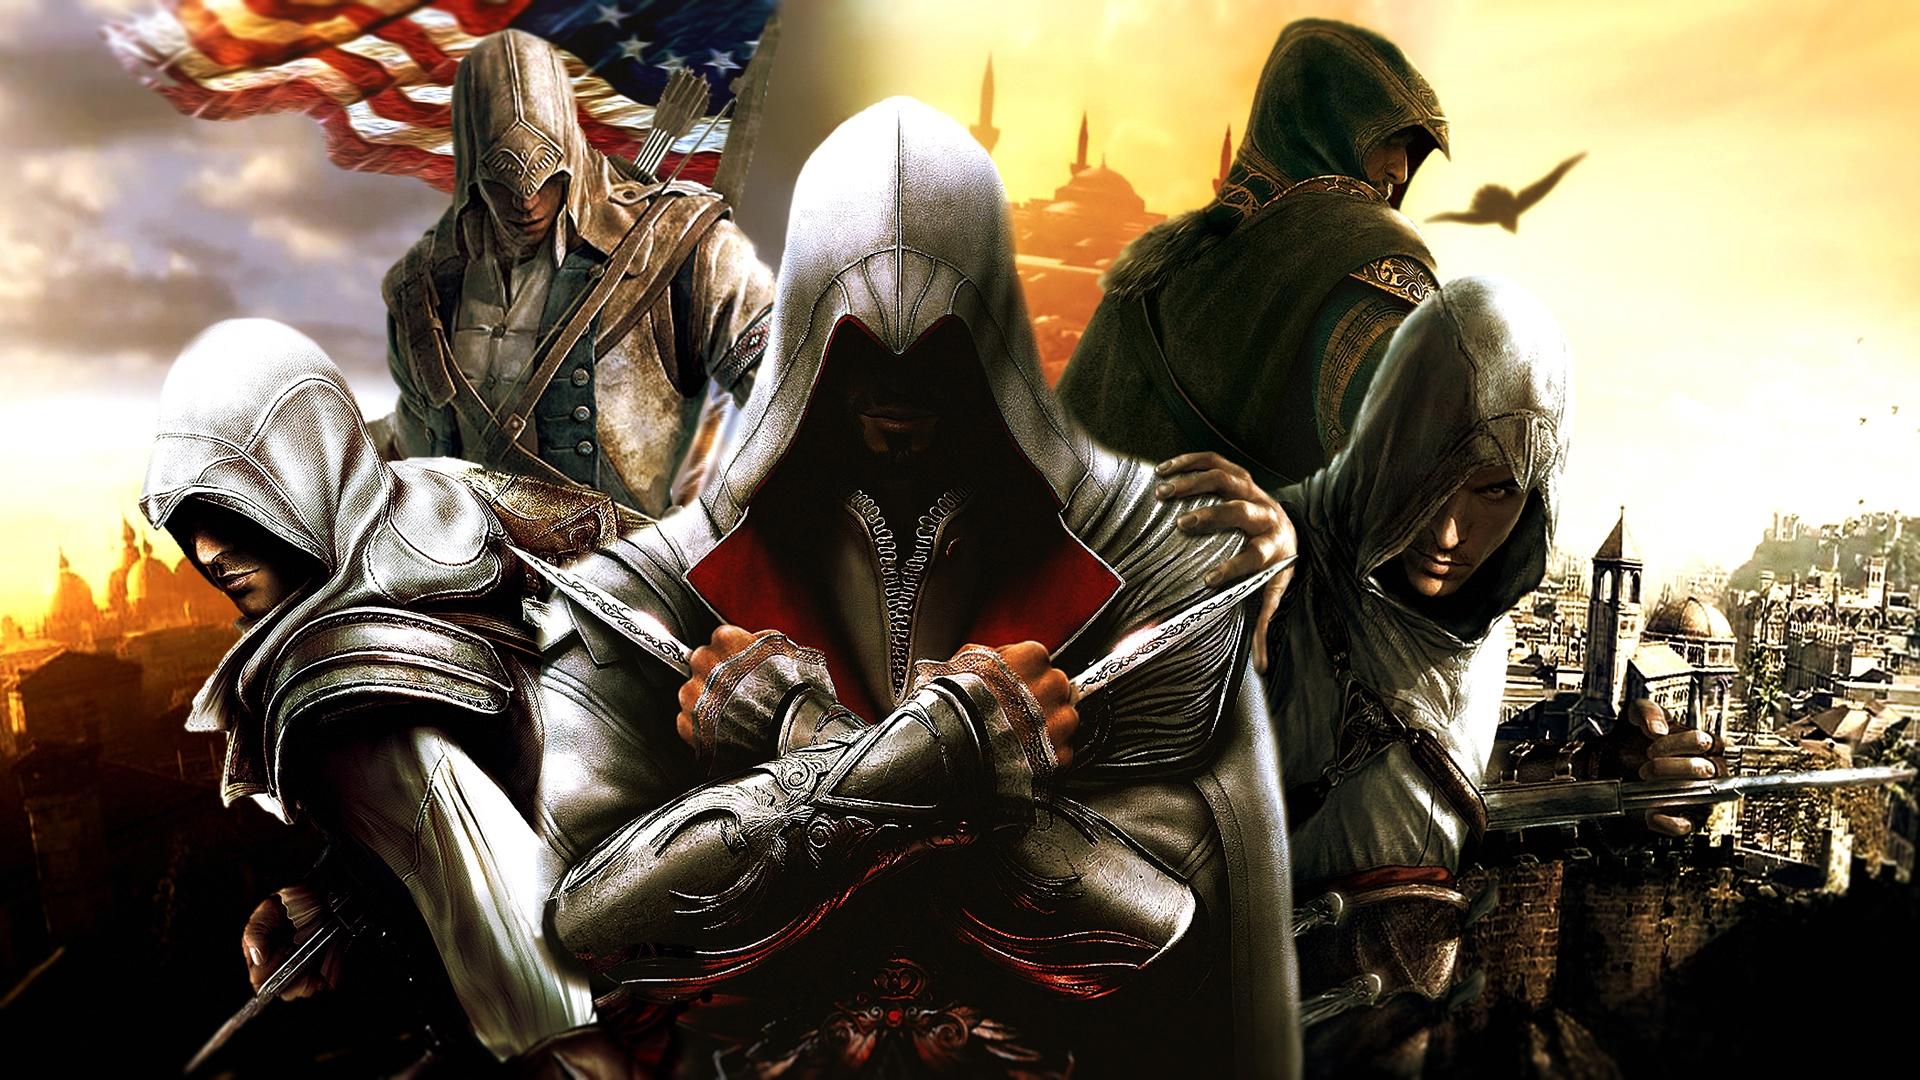 Assassins Creed Assassins Creed 1920x1080